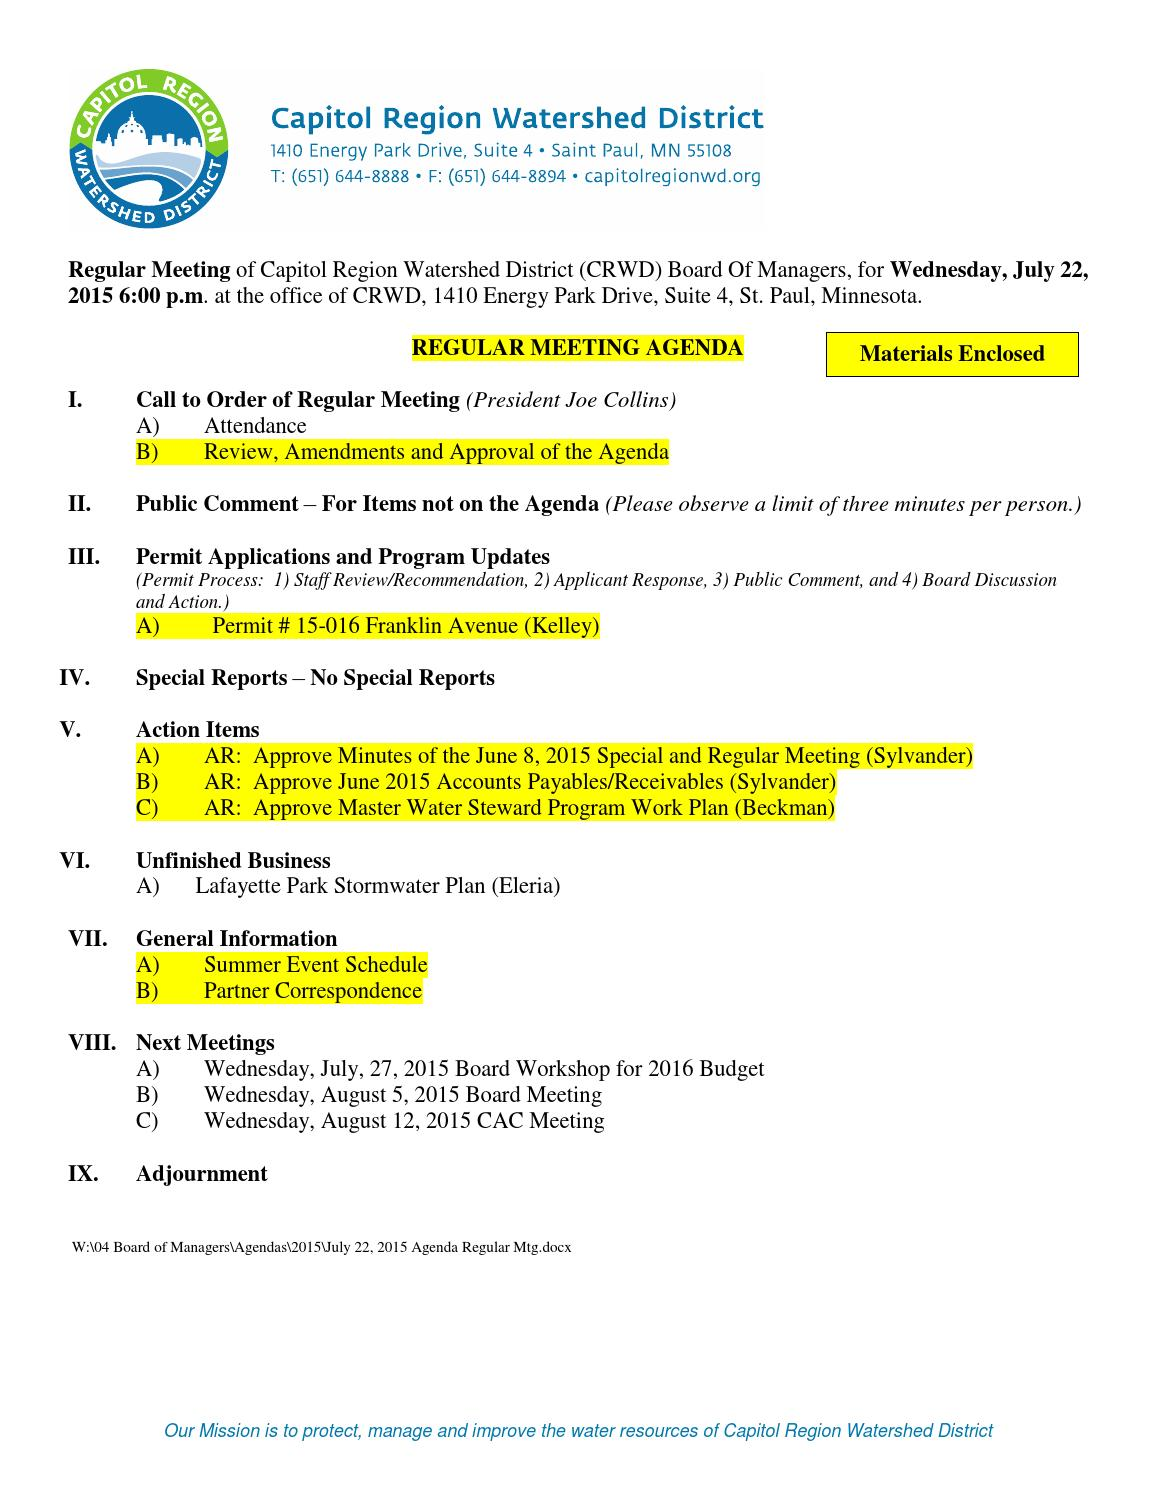 July 22 2015 Board Of Managers Packet By Capitol Region Watershed District Issuu